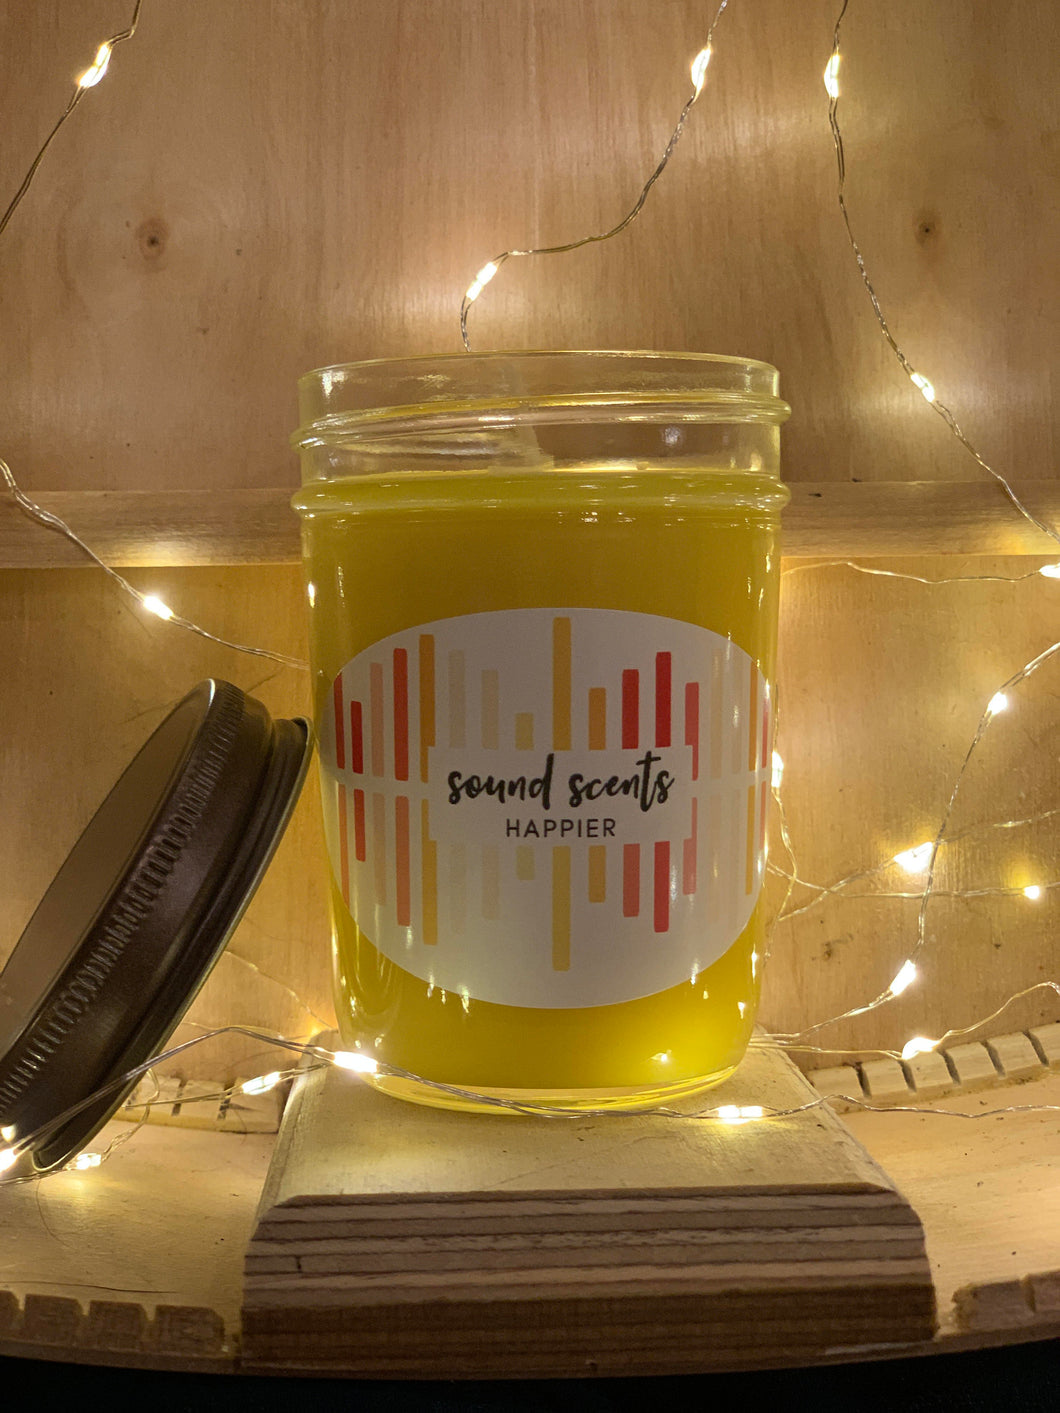 HAPPIER - 8oz 100% Soy Wax Candle